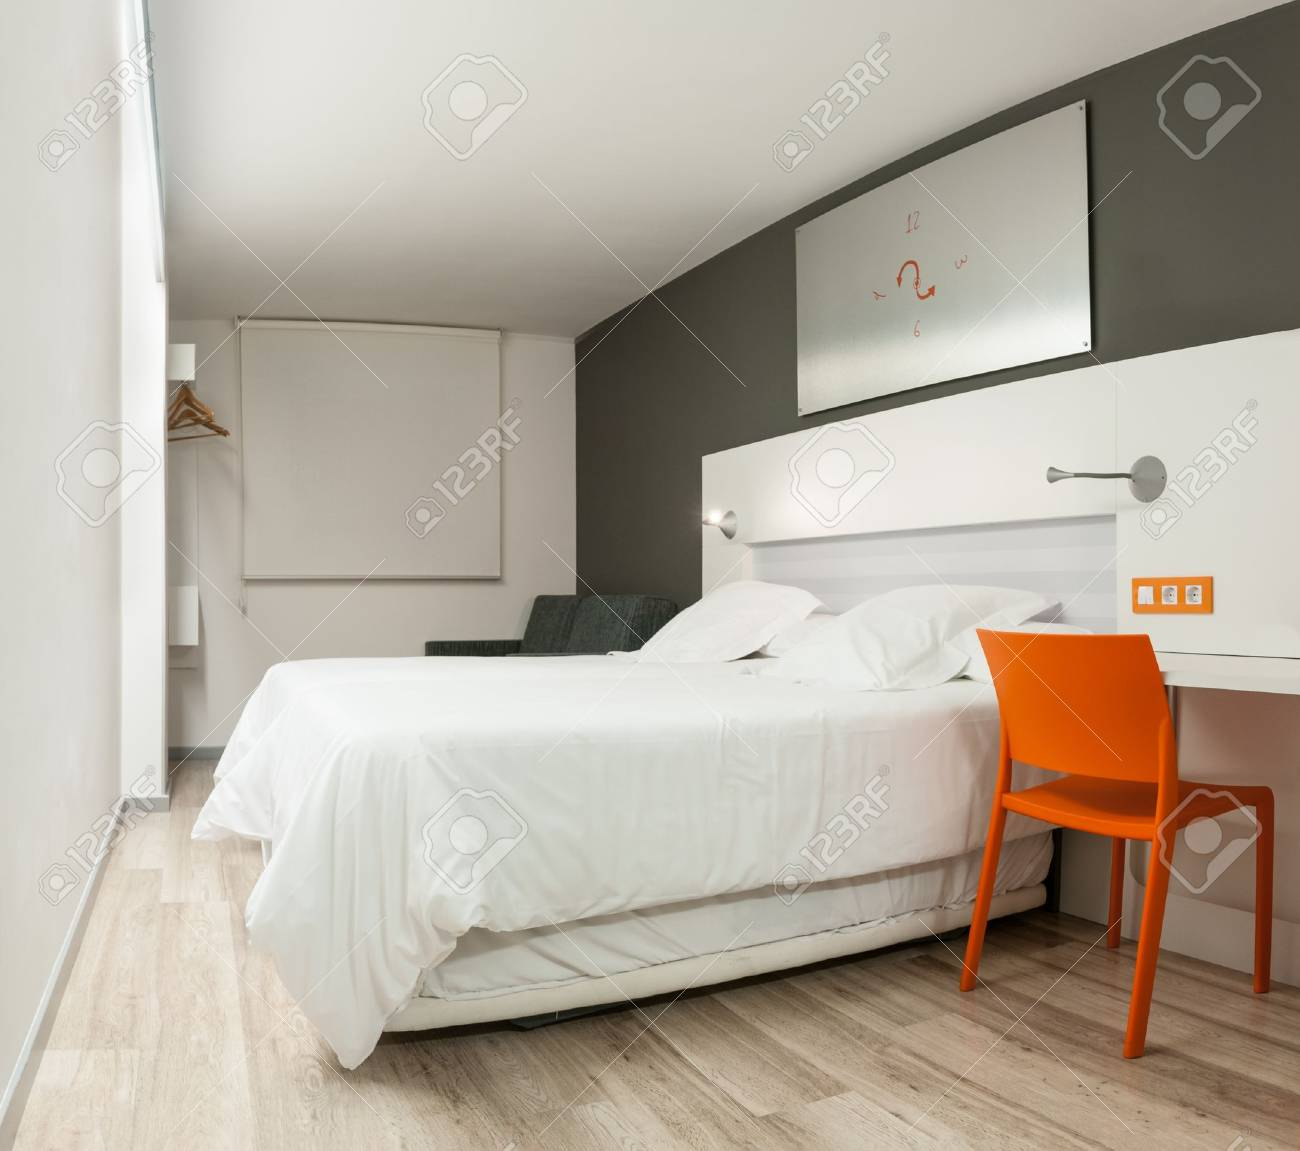 Stunning Chambre Style Moderne Images - Design Trends 2017 ...